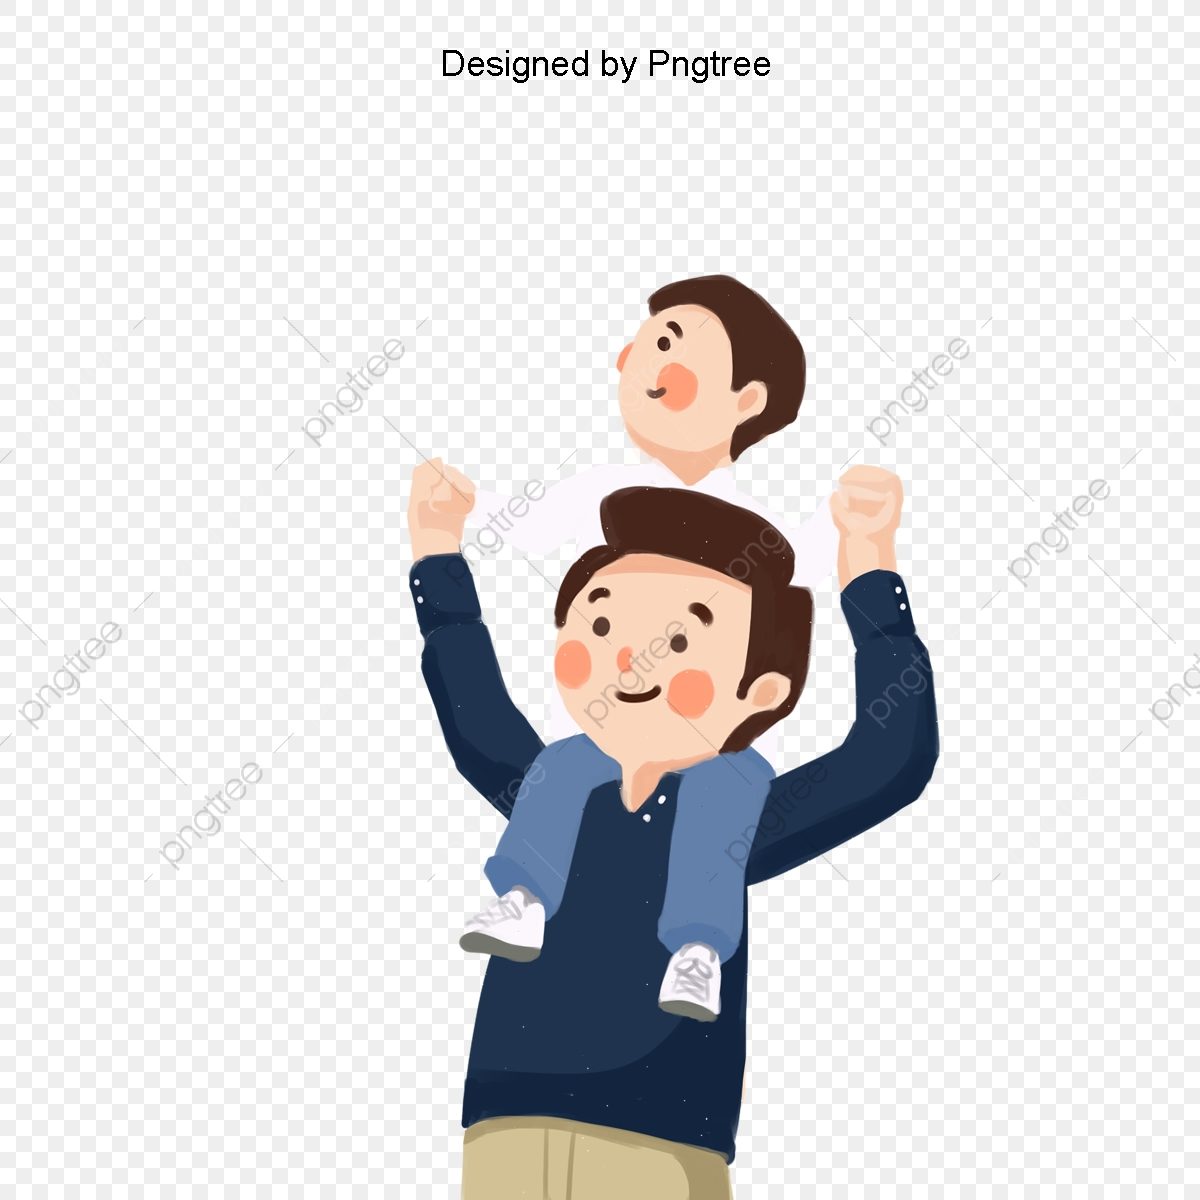 Cartoon Happy Father And Son Elements Father And Son Cartoon Happy Png Transparent Clipart Image And Psd File For Free Download